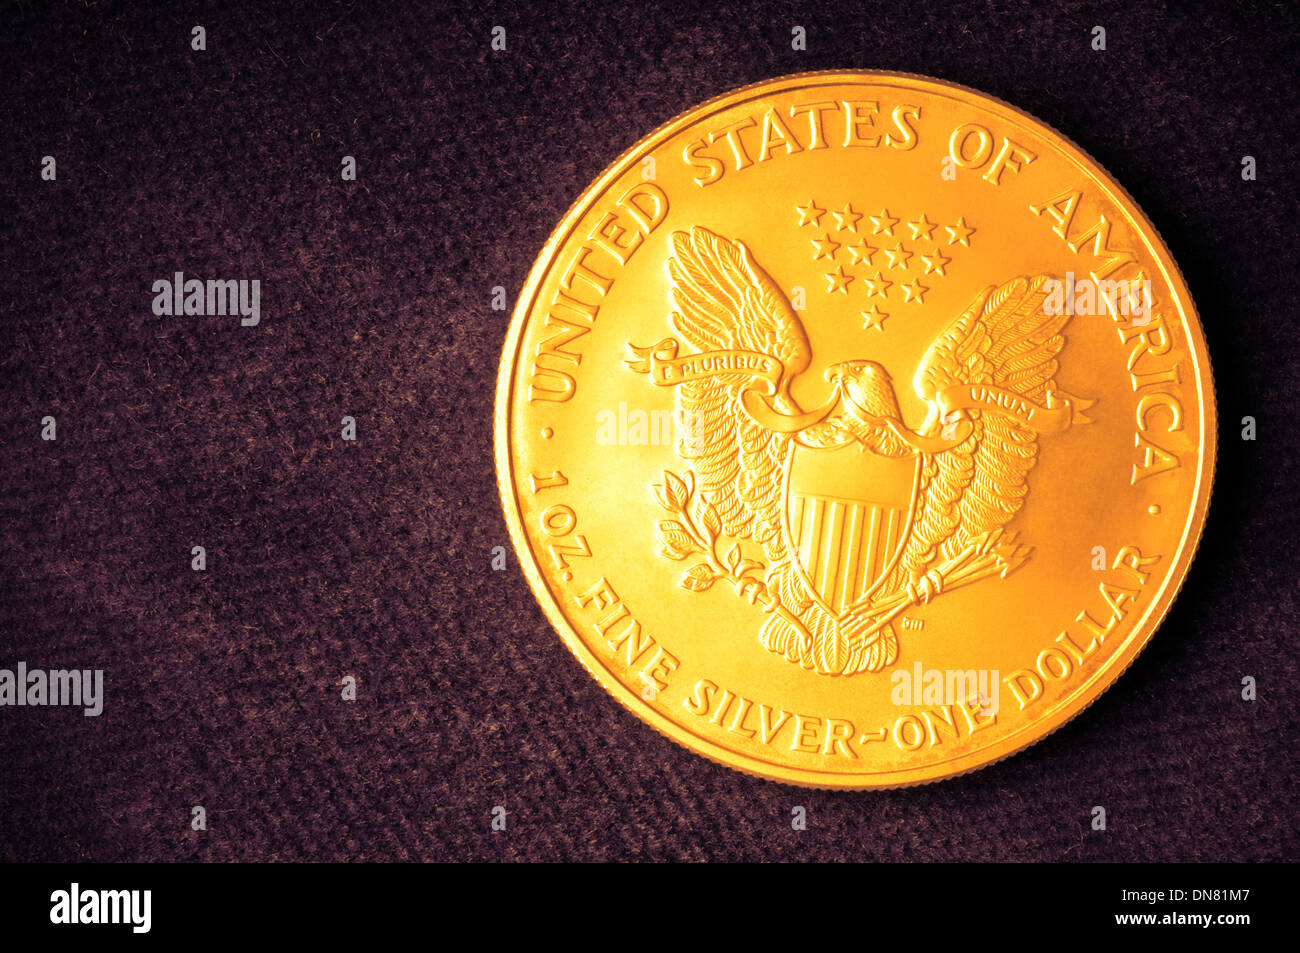 American one dollar coin - Stock Image